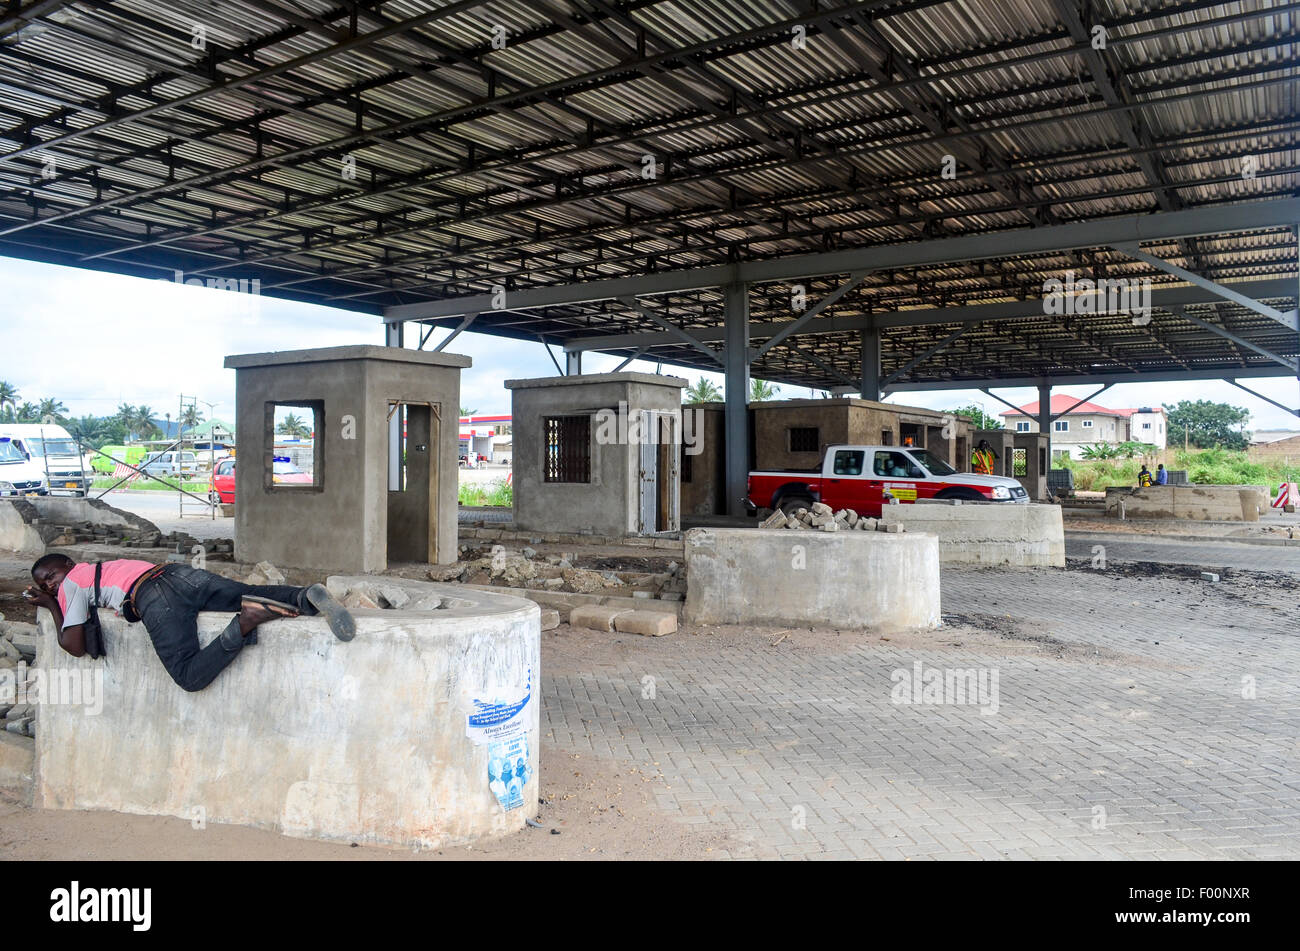 New highway toll in construction at the entrance of Accra, Ghana, and man sleeping - Stock Image